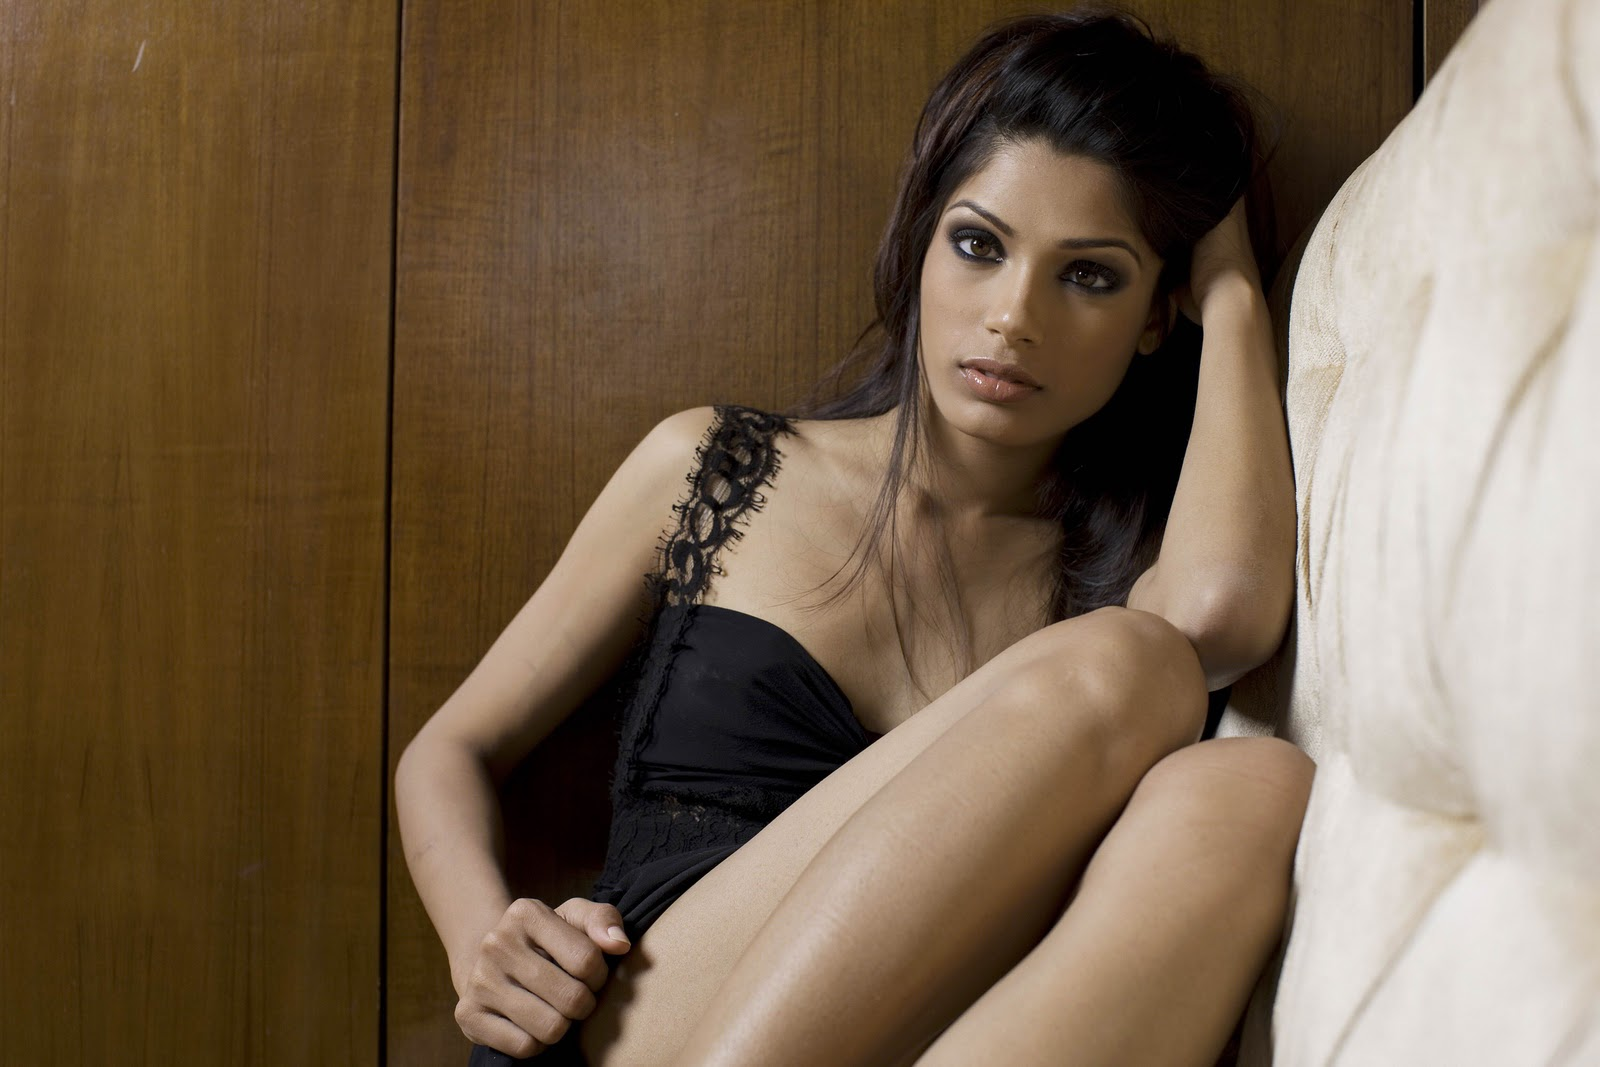 http://2.bp.blogspot.com/-bseRsv89R_8/UAla1qwrIzI/AAAAAAAAAy4/sUPjwJRy27k/s1600/freida-pinto-hot-photo-shoot-wallpaper.jpg